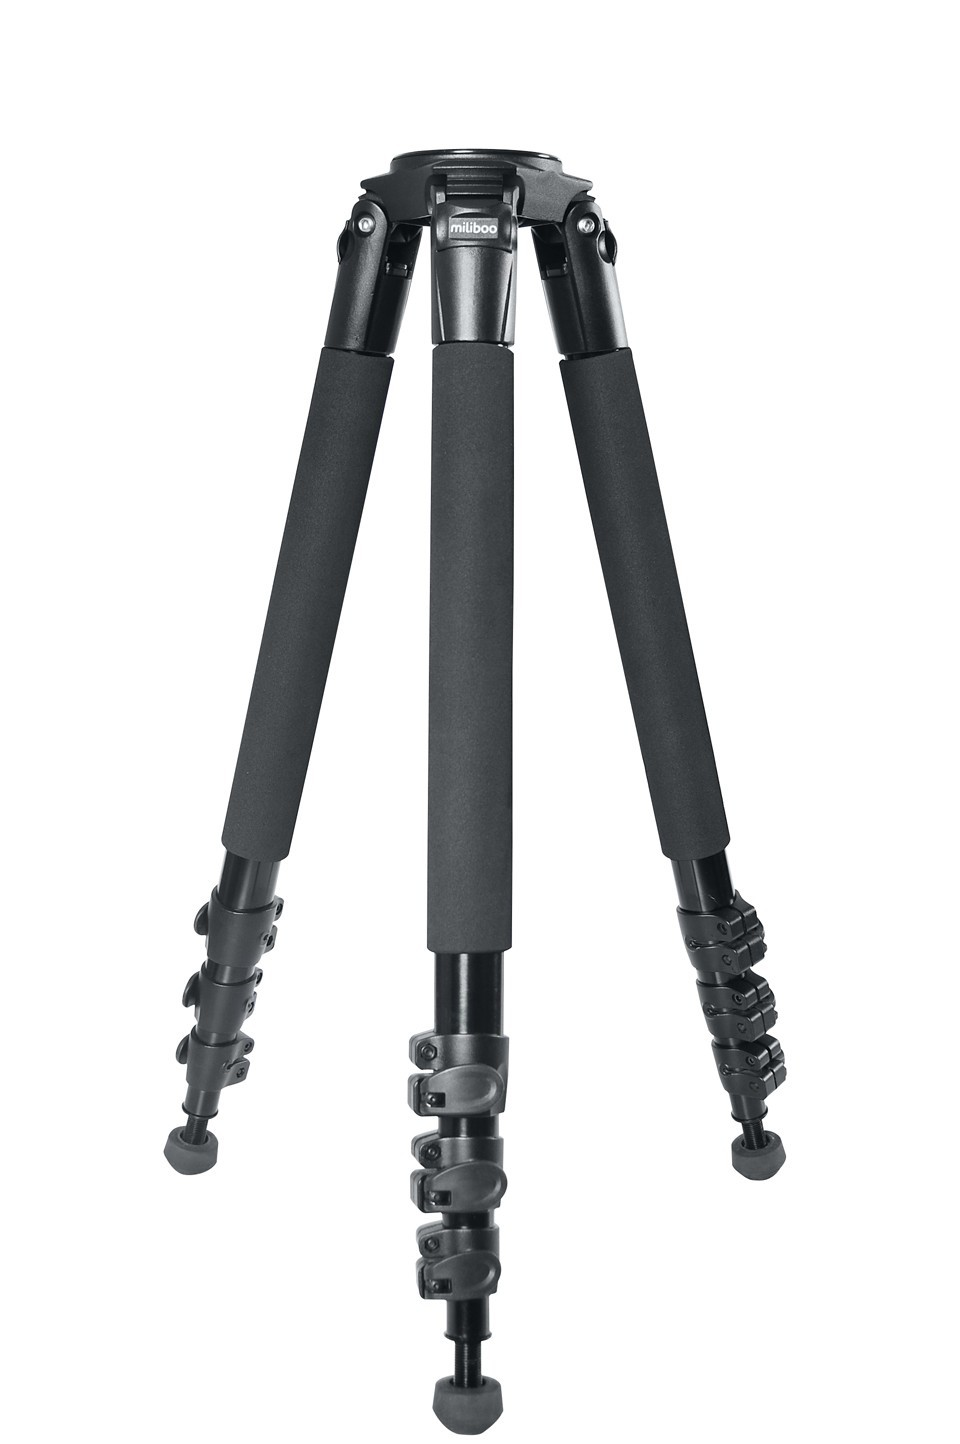 miliboo MTT702A (Without head) SLR Camera Bracket Aluminium Tripod for Professional Camcorder/Video Camera/DSLR Stand aluminium alloy professional camera tripod flexible dslr video monopod for photography with head suitable for 65mm bowl size